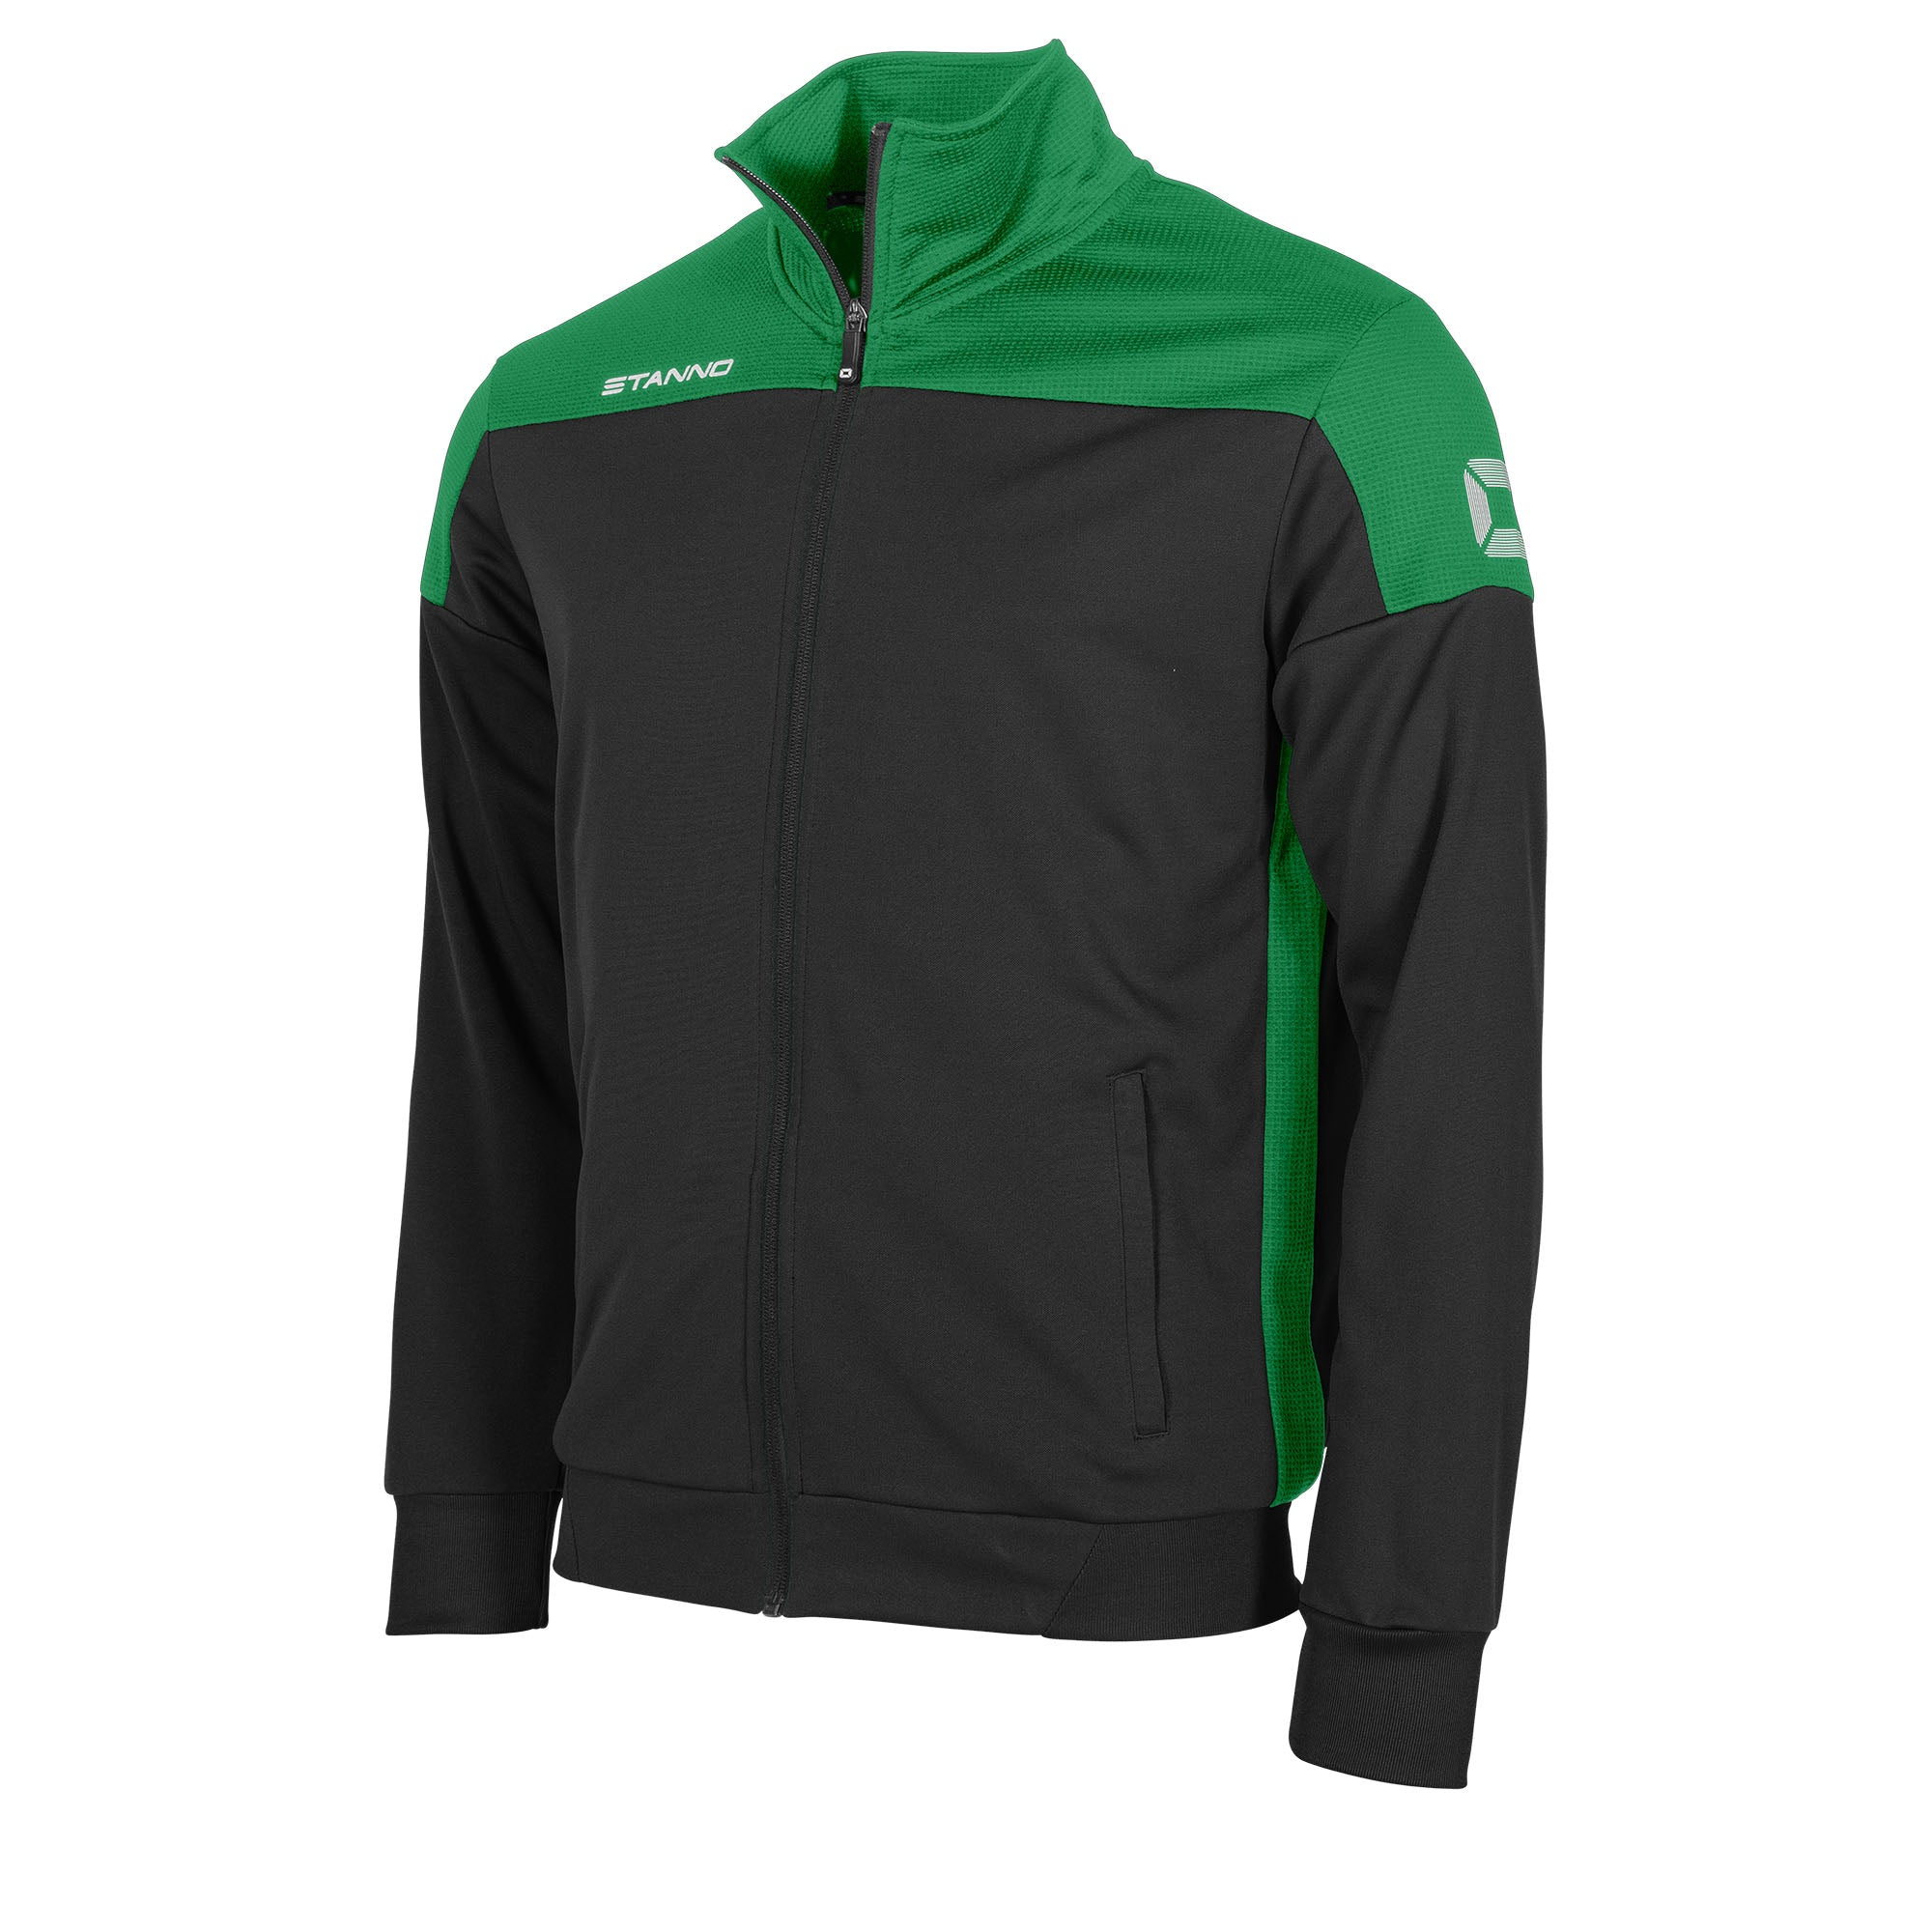 Stanno Pride TTS Jacket full zip in black with green contrast shoulders and side panel